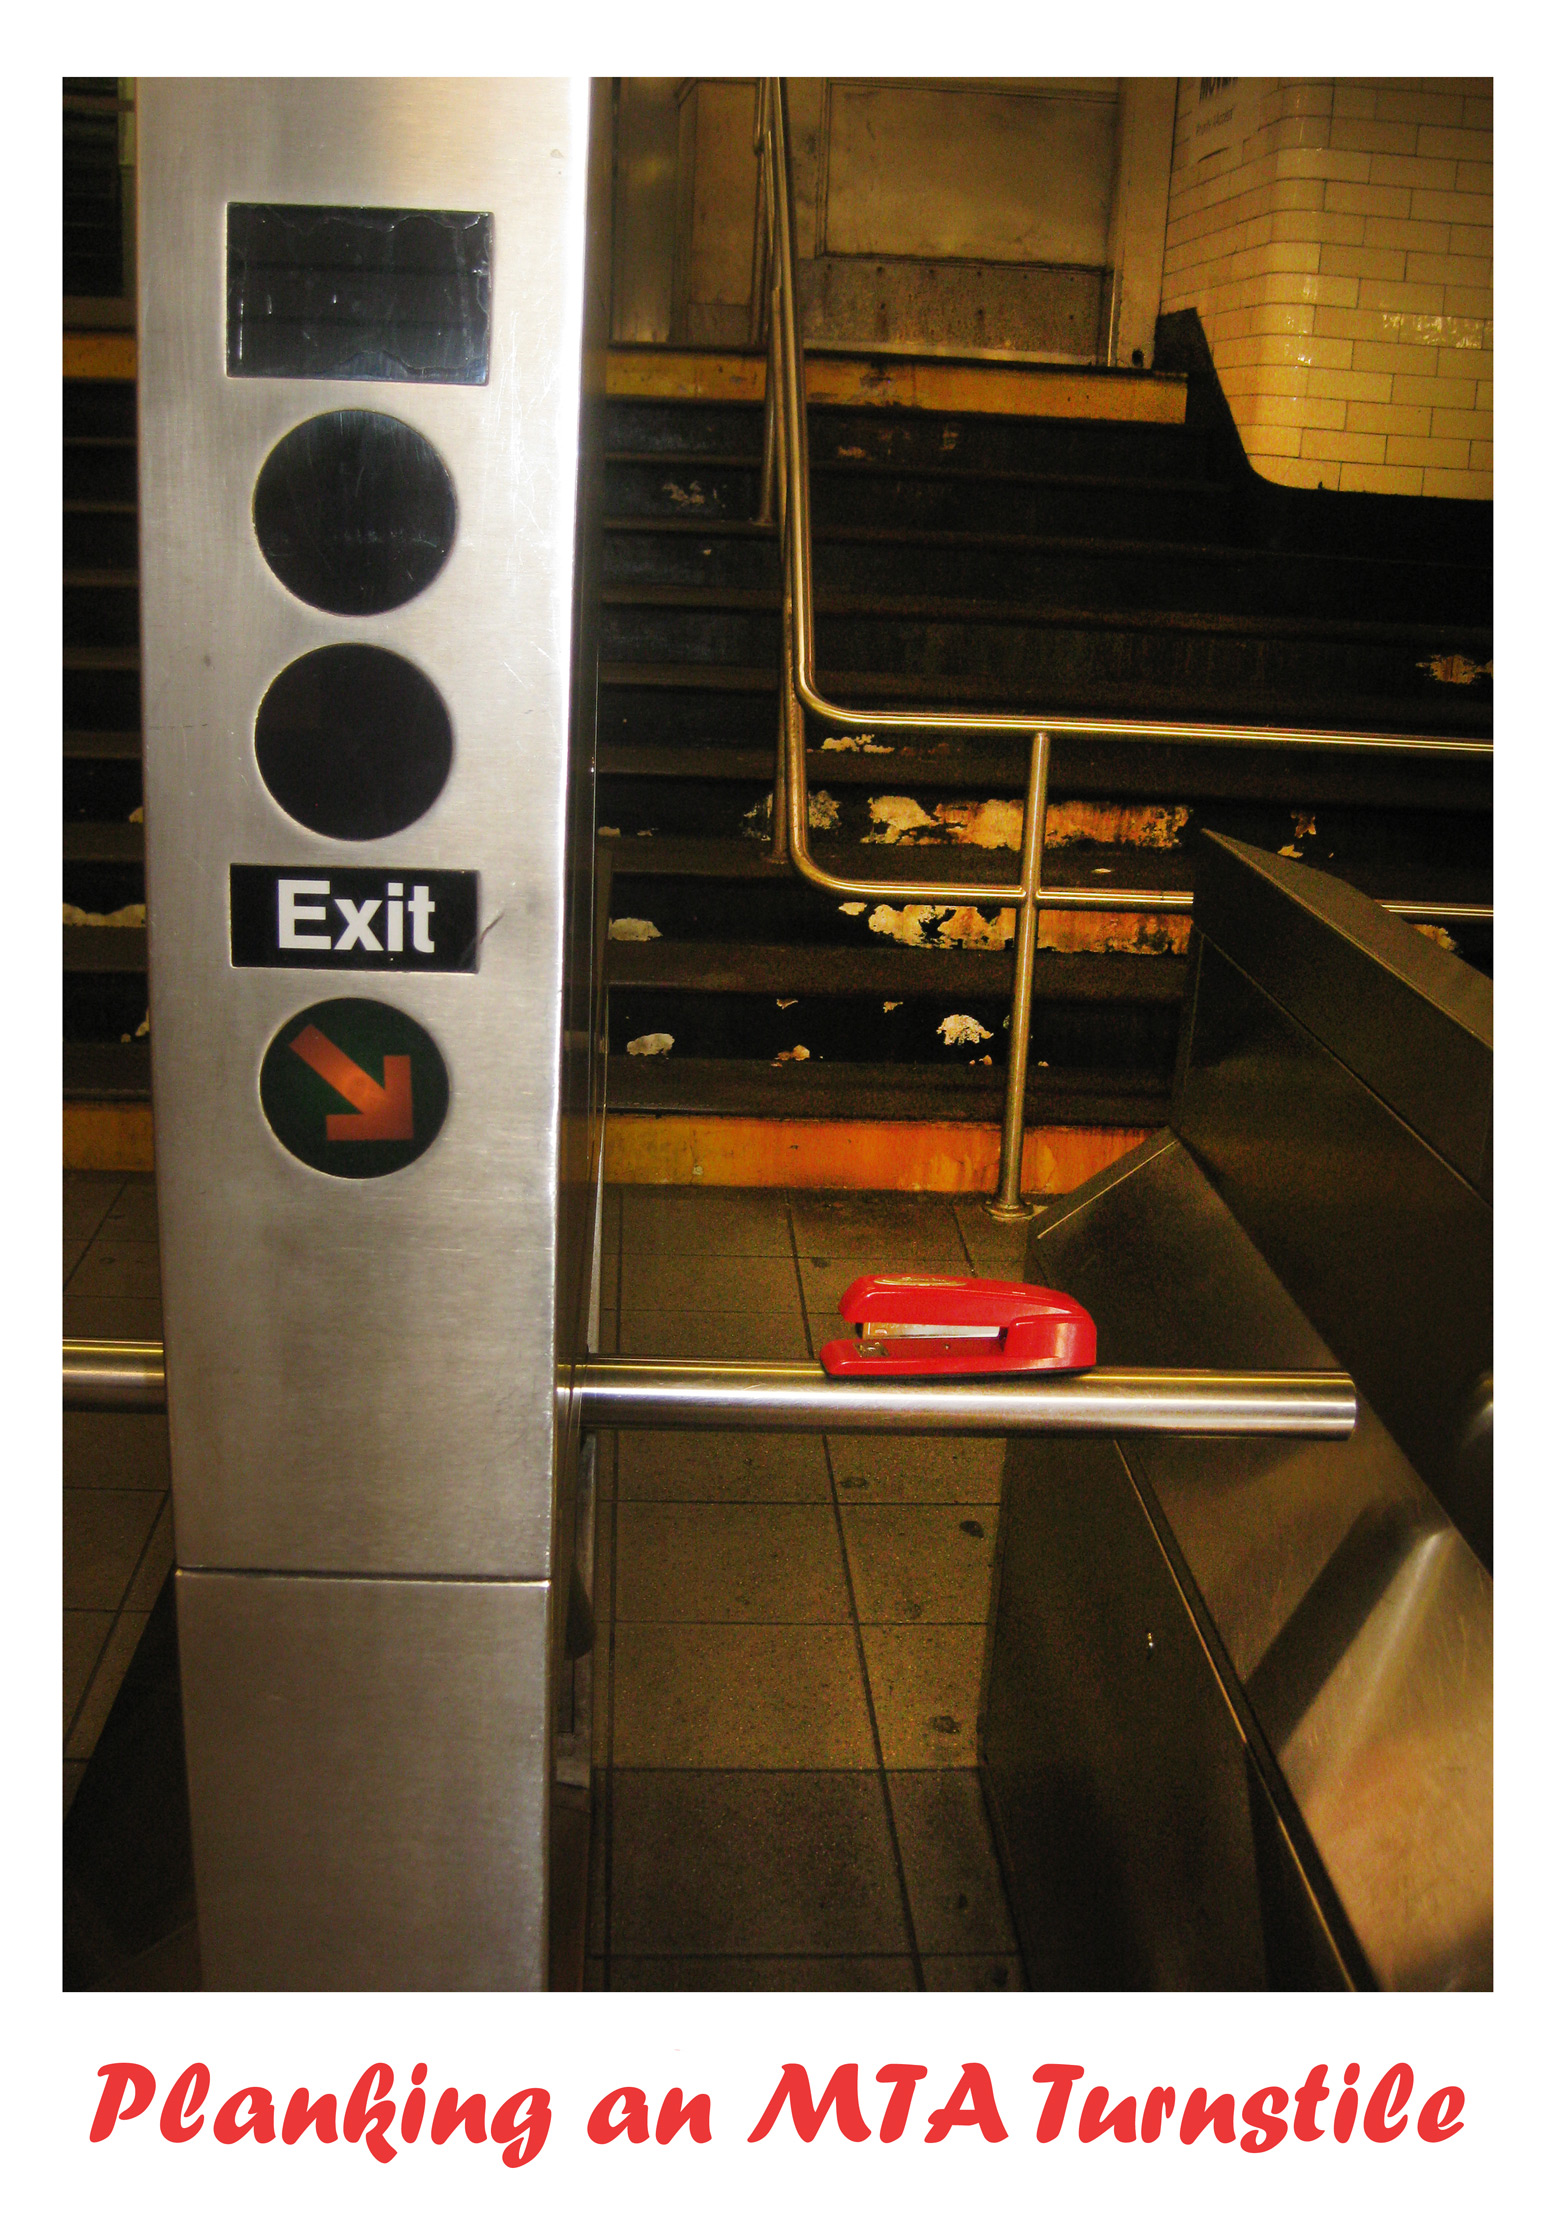 Shoplet Red Stapler Planking MTA Turnstile The Planking Stapler has Moved!